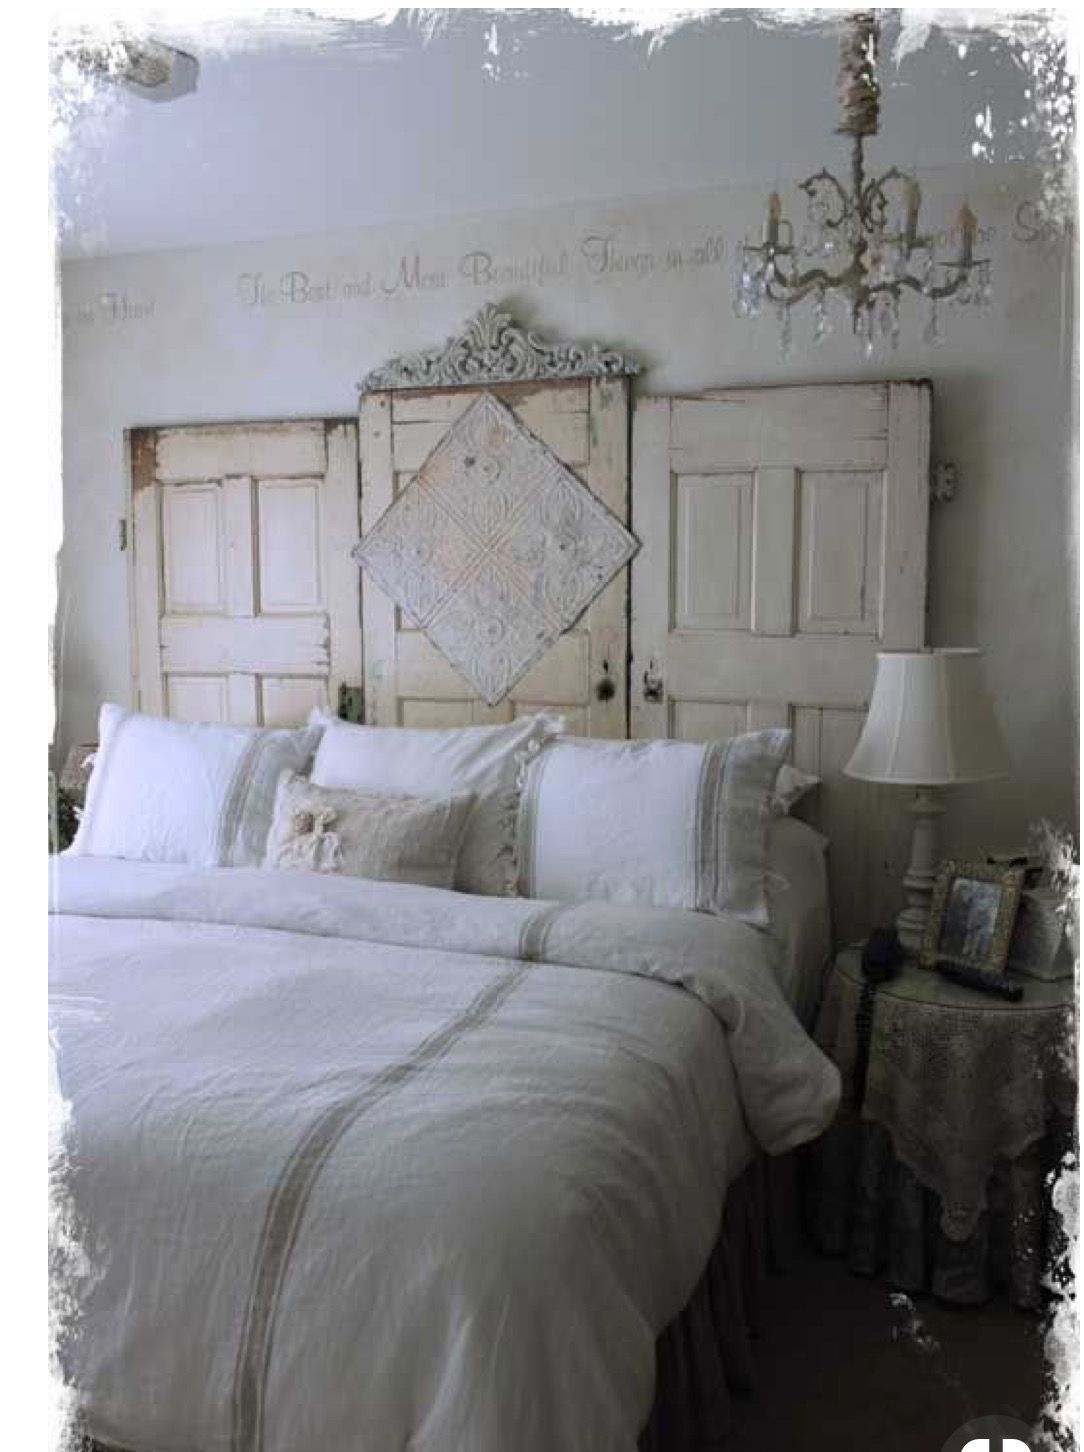 Unique Headboards, Creative Headboards Diy, Headboards For Beds Diy, Antique  Door Headboards, - Pin By Tammy Little On For The Home In 2018 Pinterest Bedroom